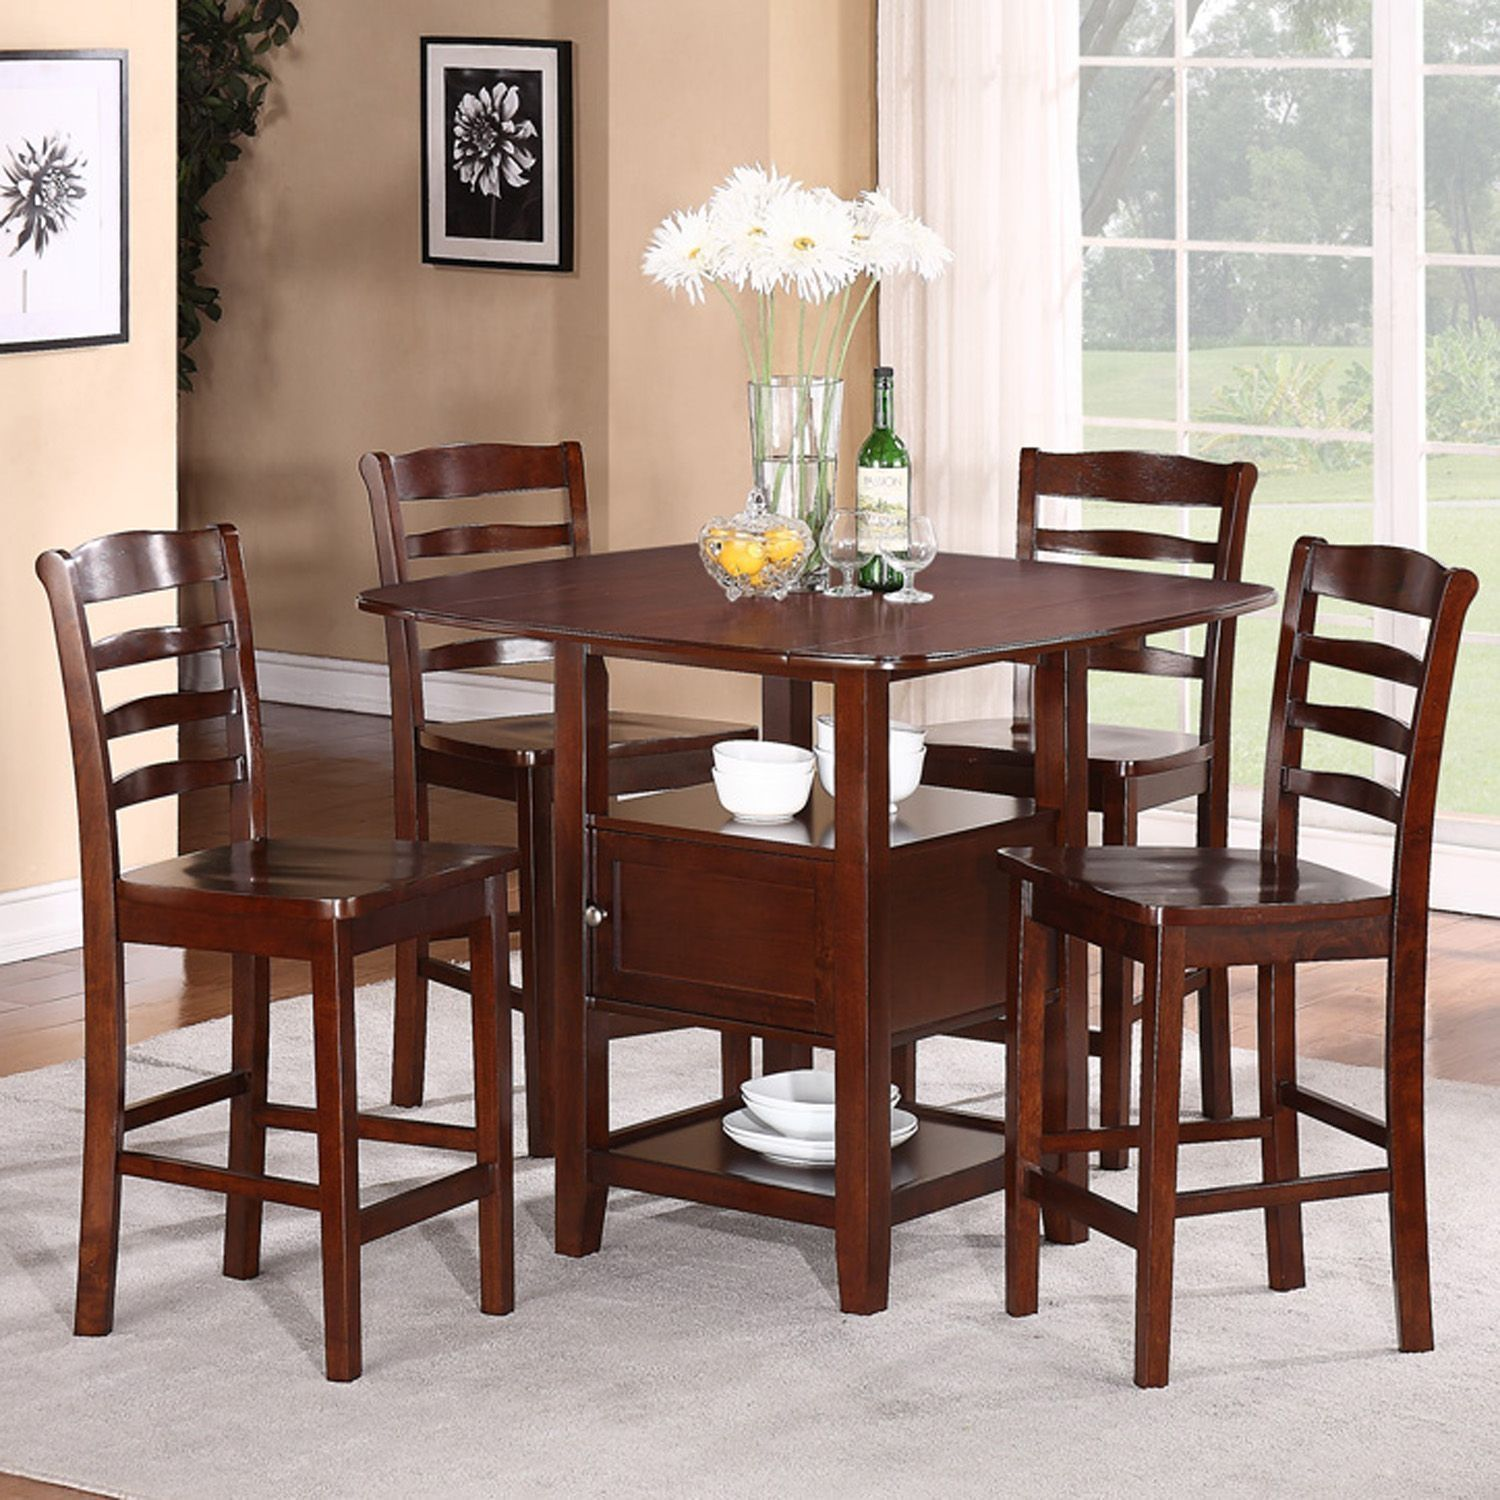 Sears Furniture Dining Room Tables